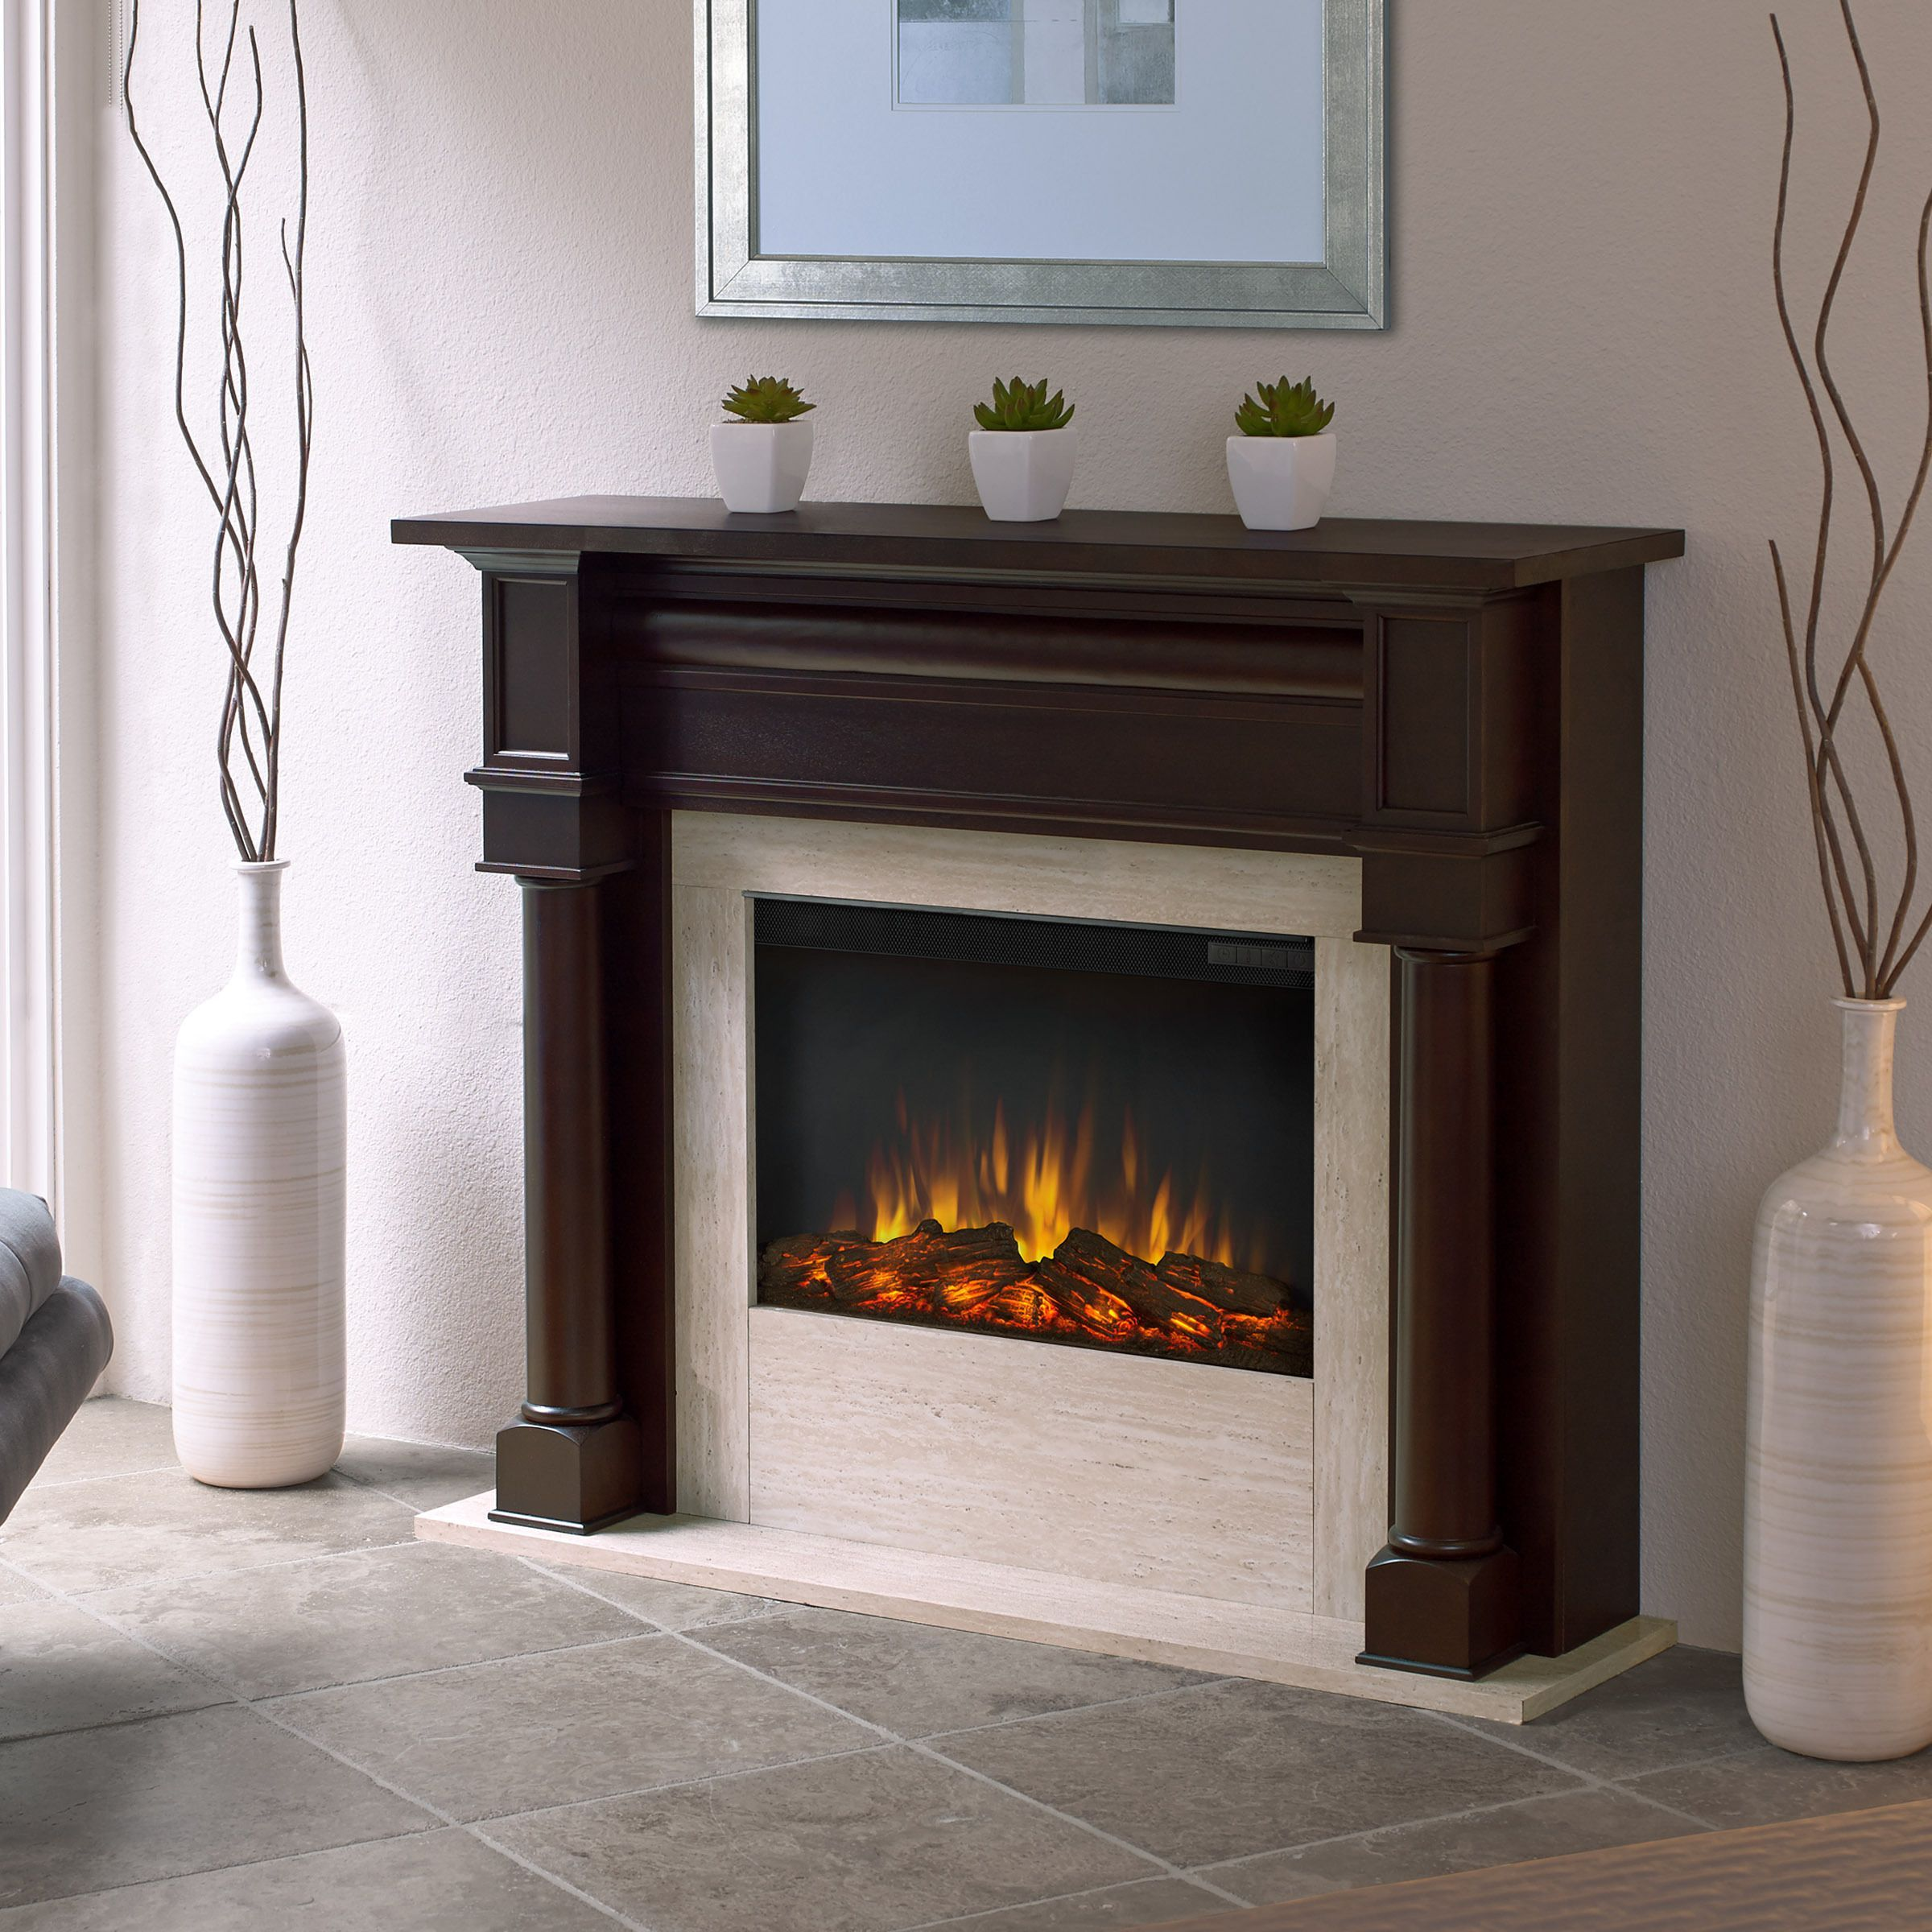 8b0c99b6213a9acef8c8c5fff6041836 Top Result 50 Awesome Corner Electric Fireplace Pic 2018 Jdt4